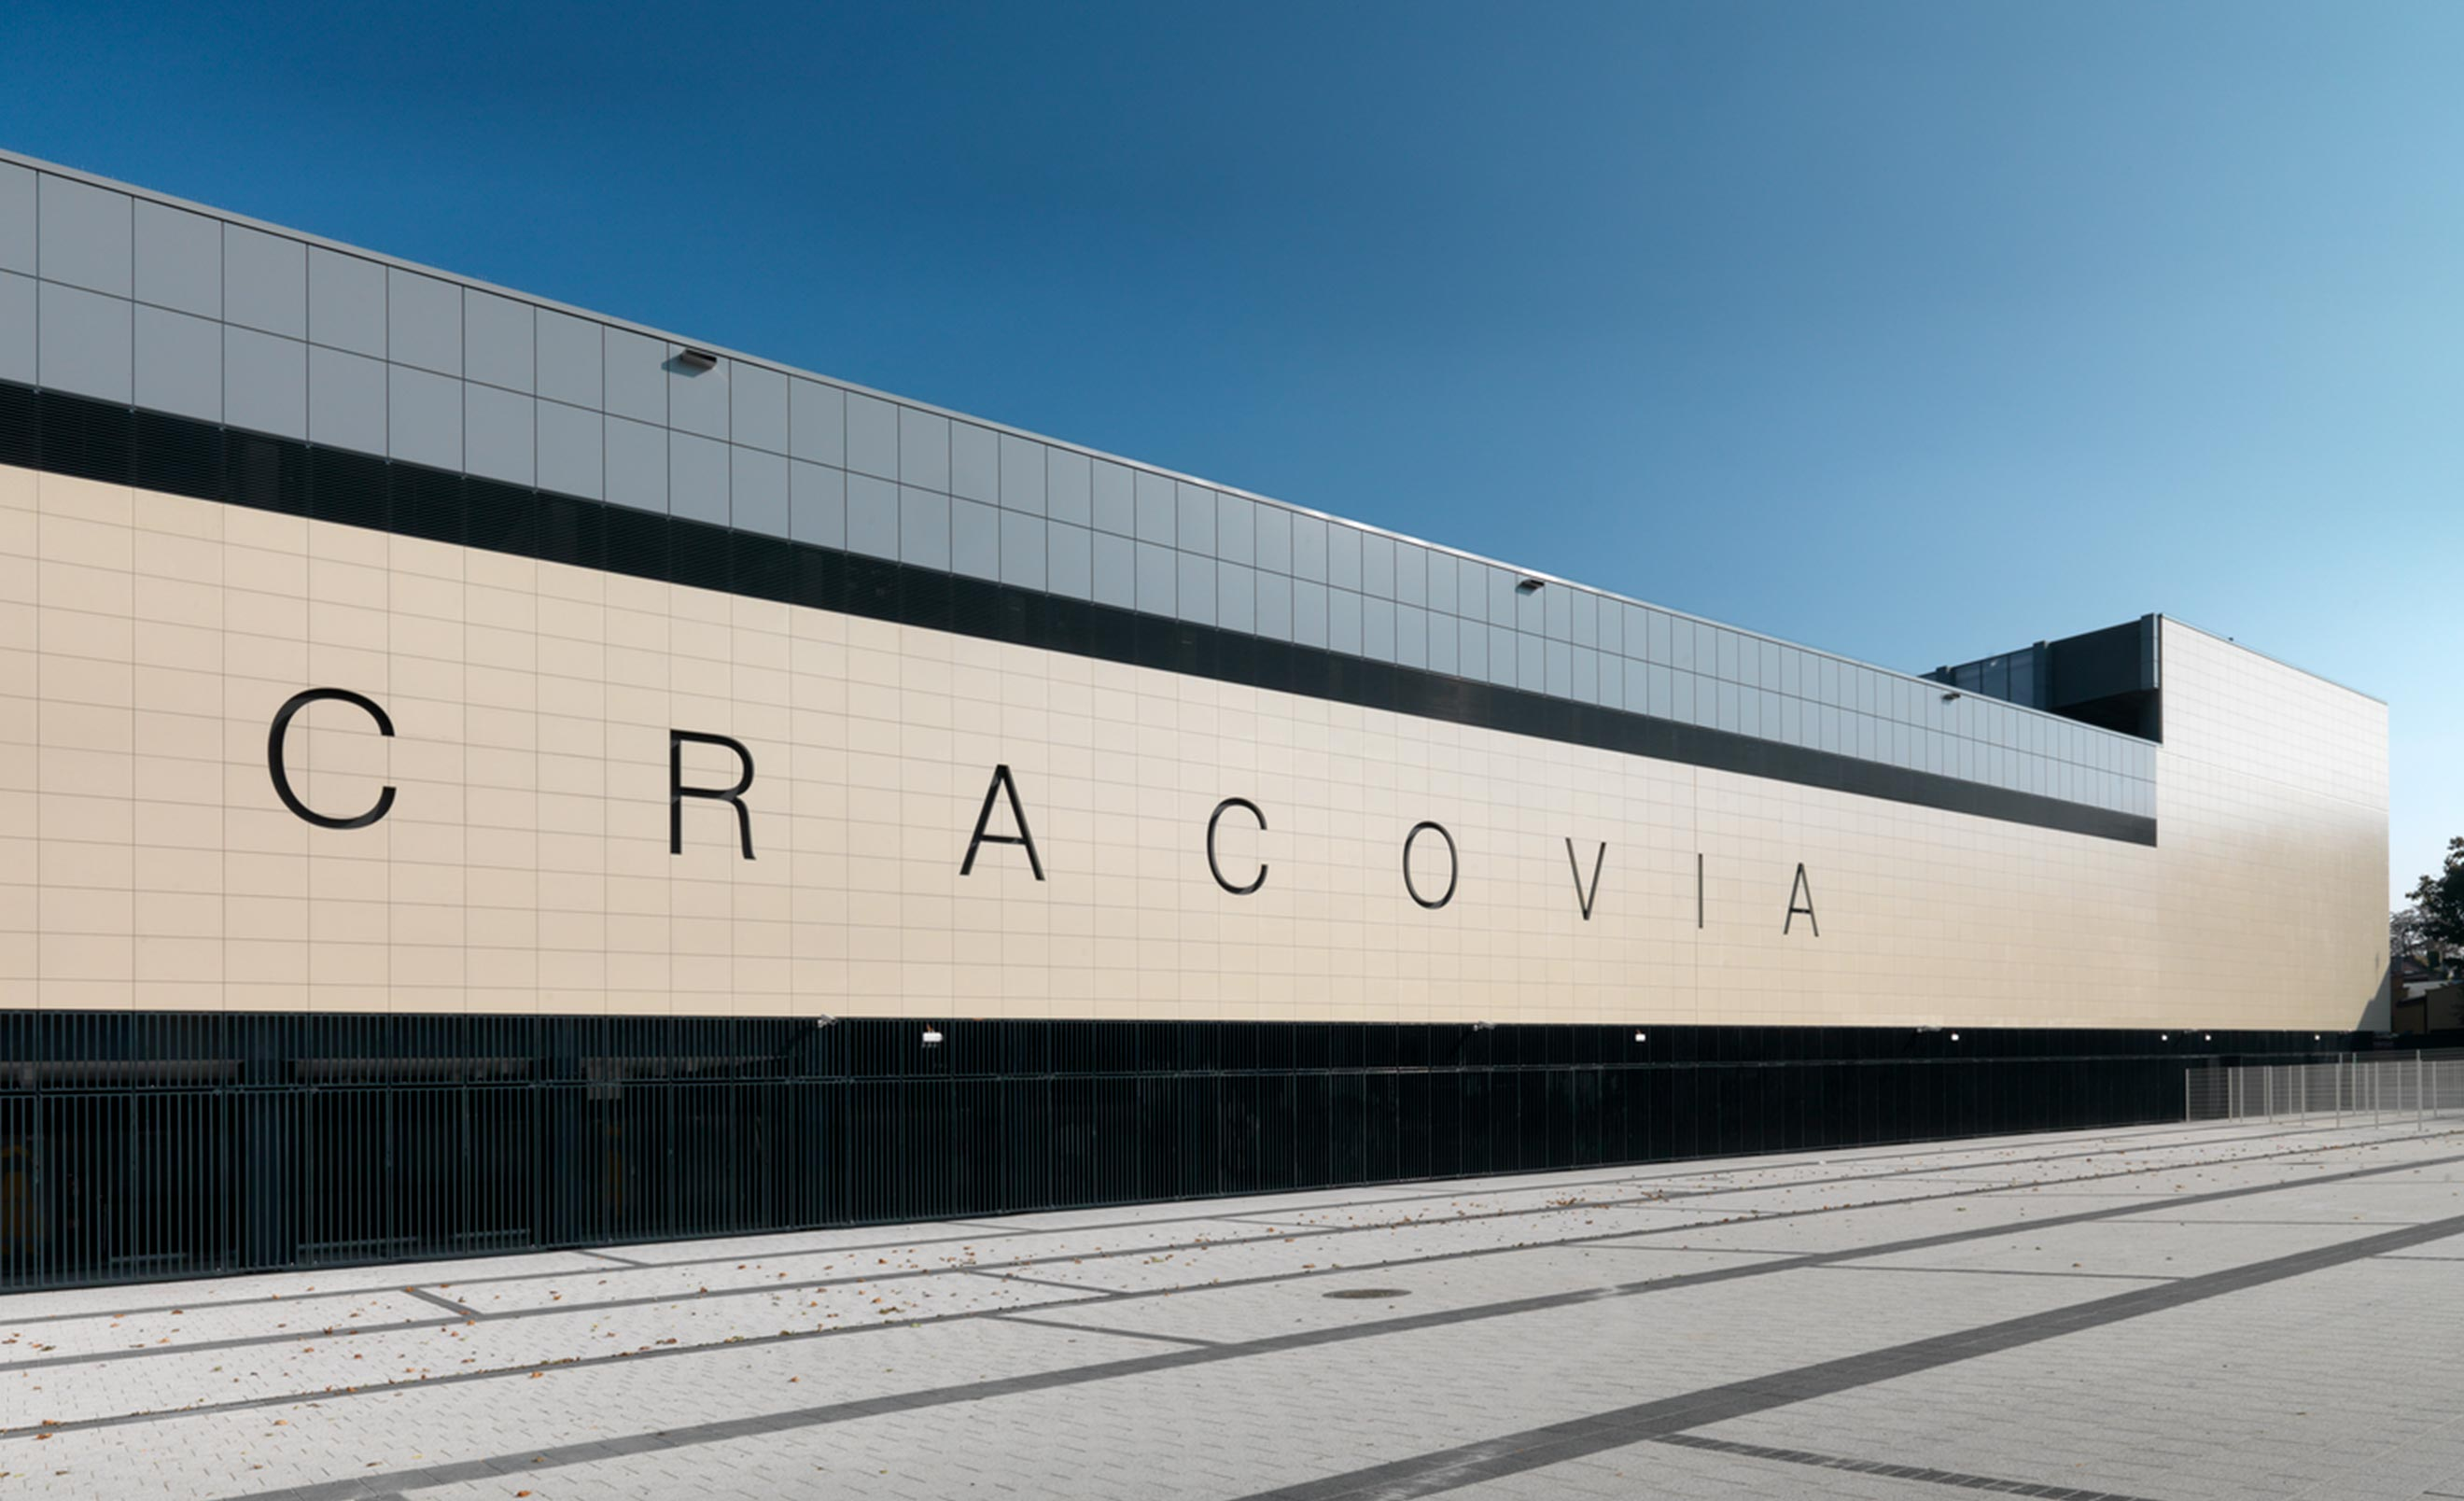 Estadio de Cracovia